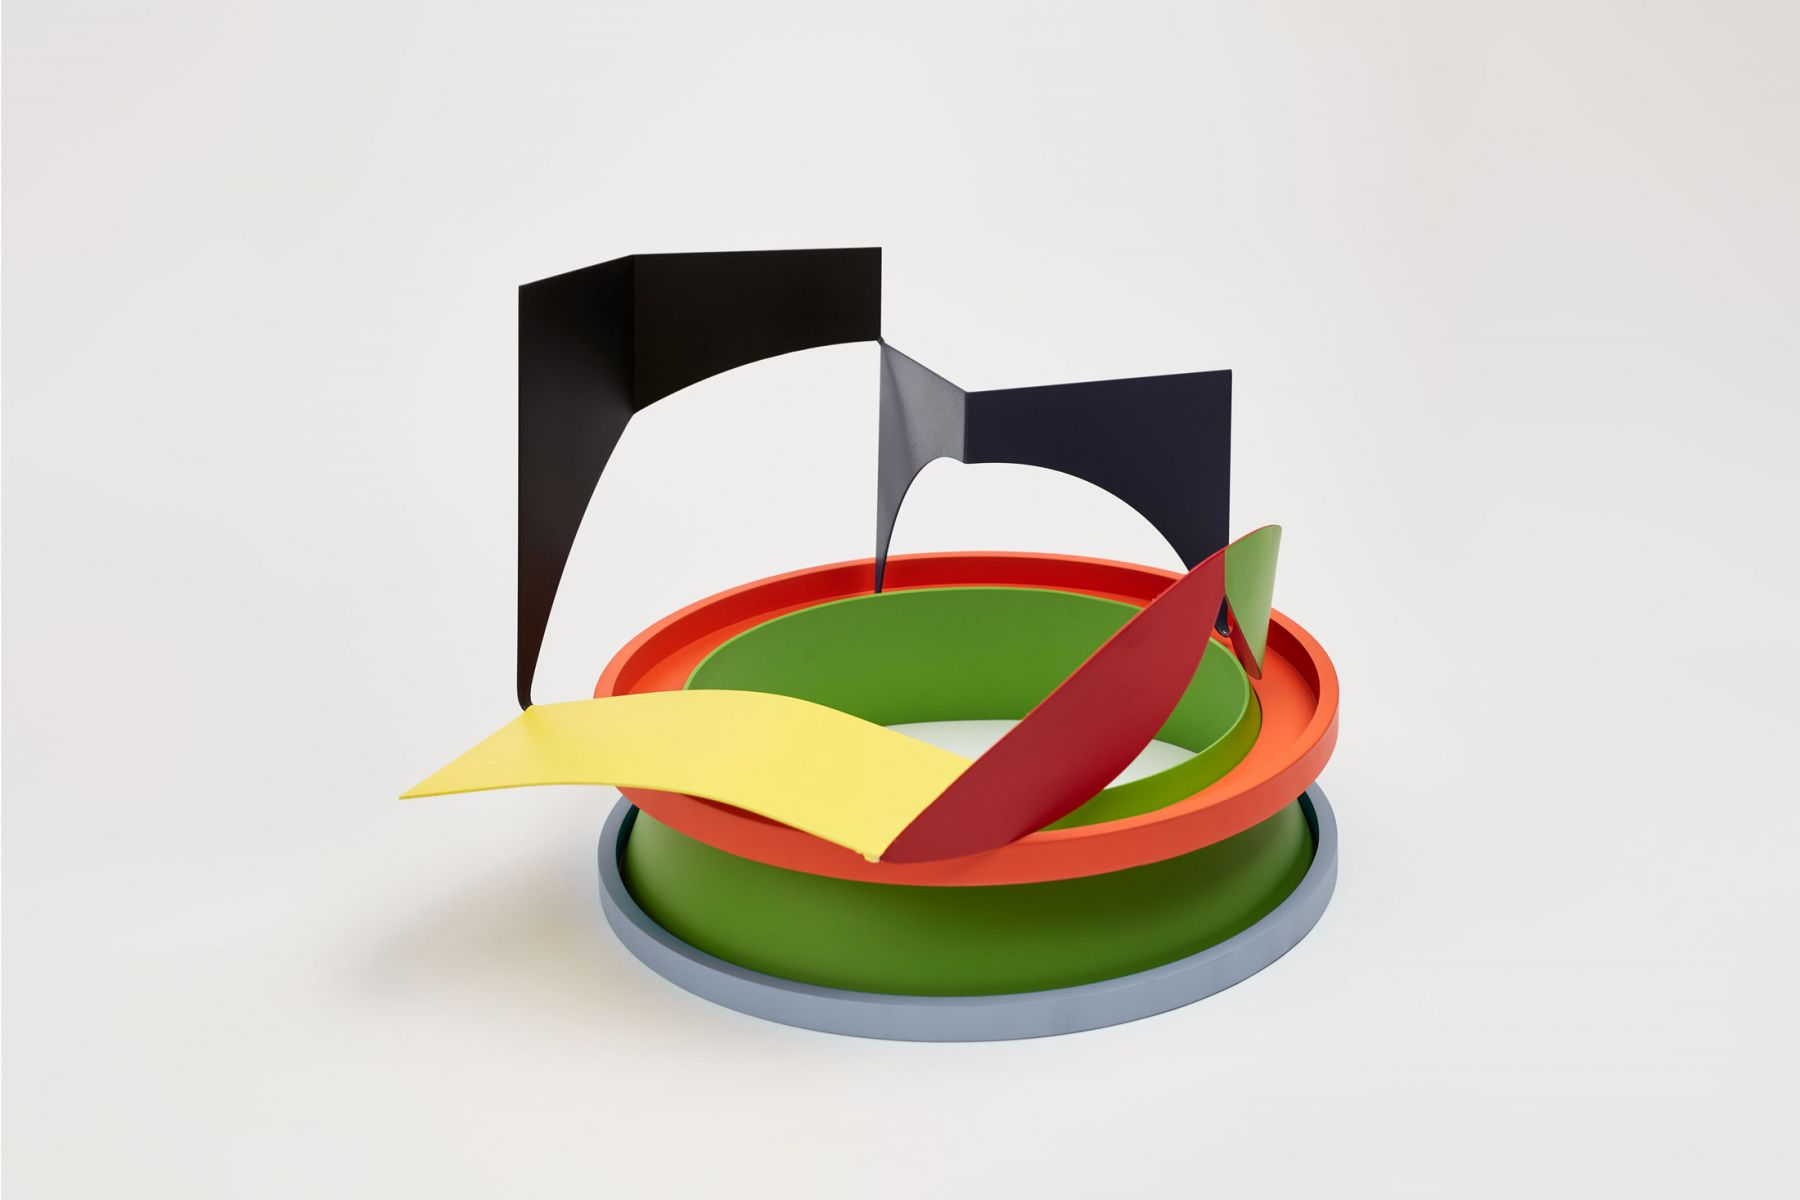 Phillip King, Ring Reel Maquette, 2013